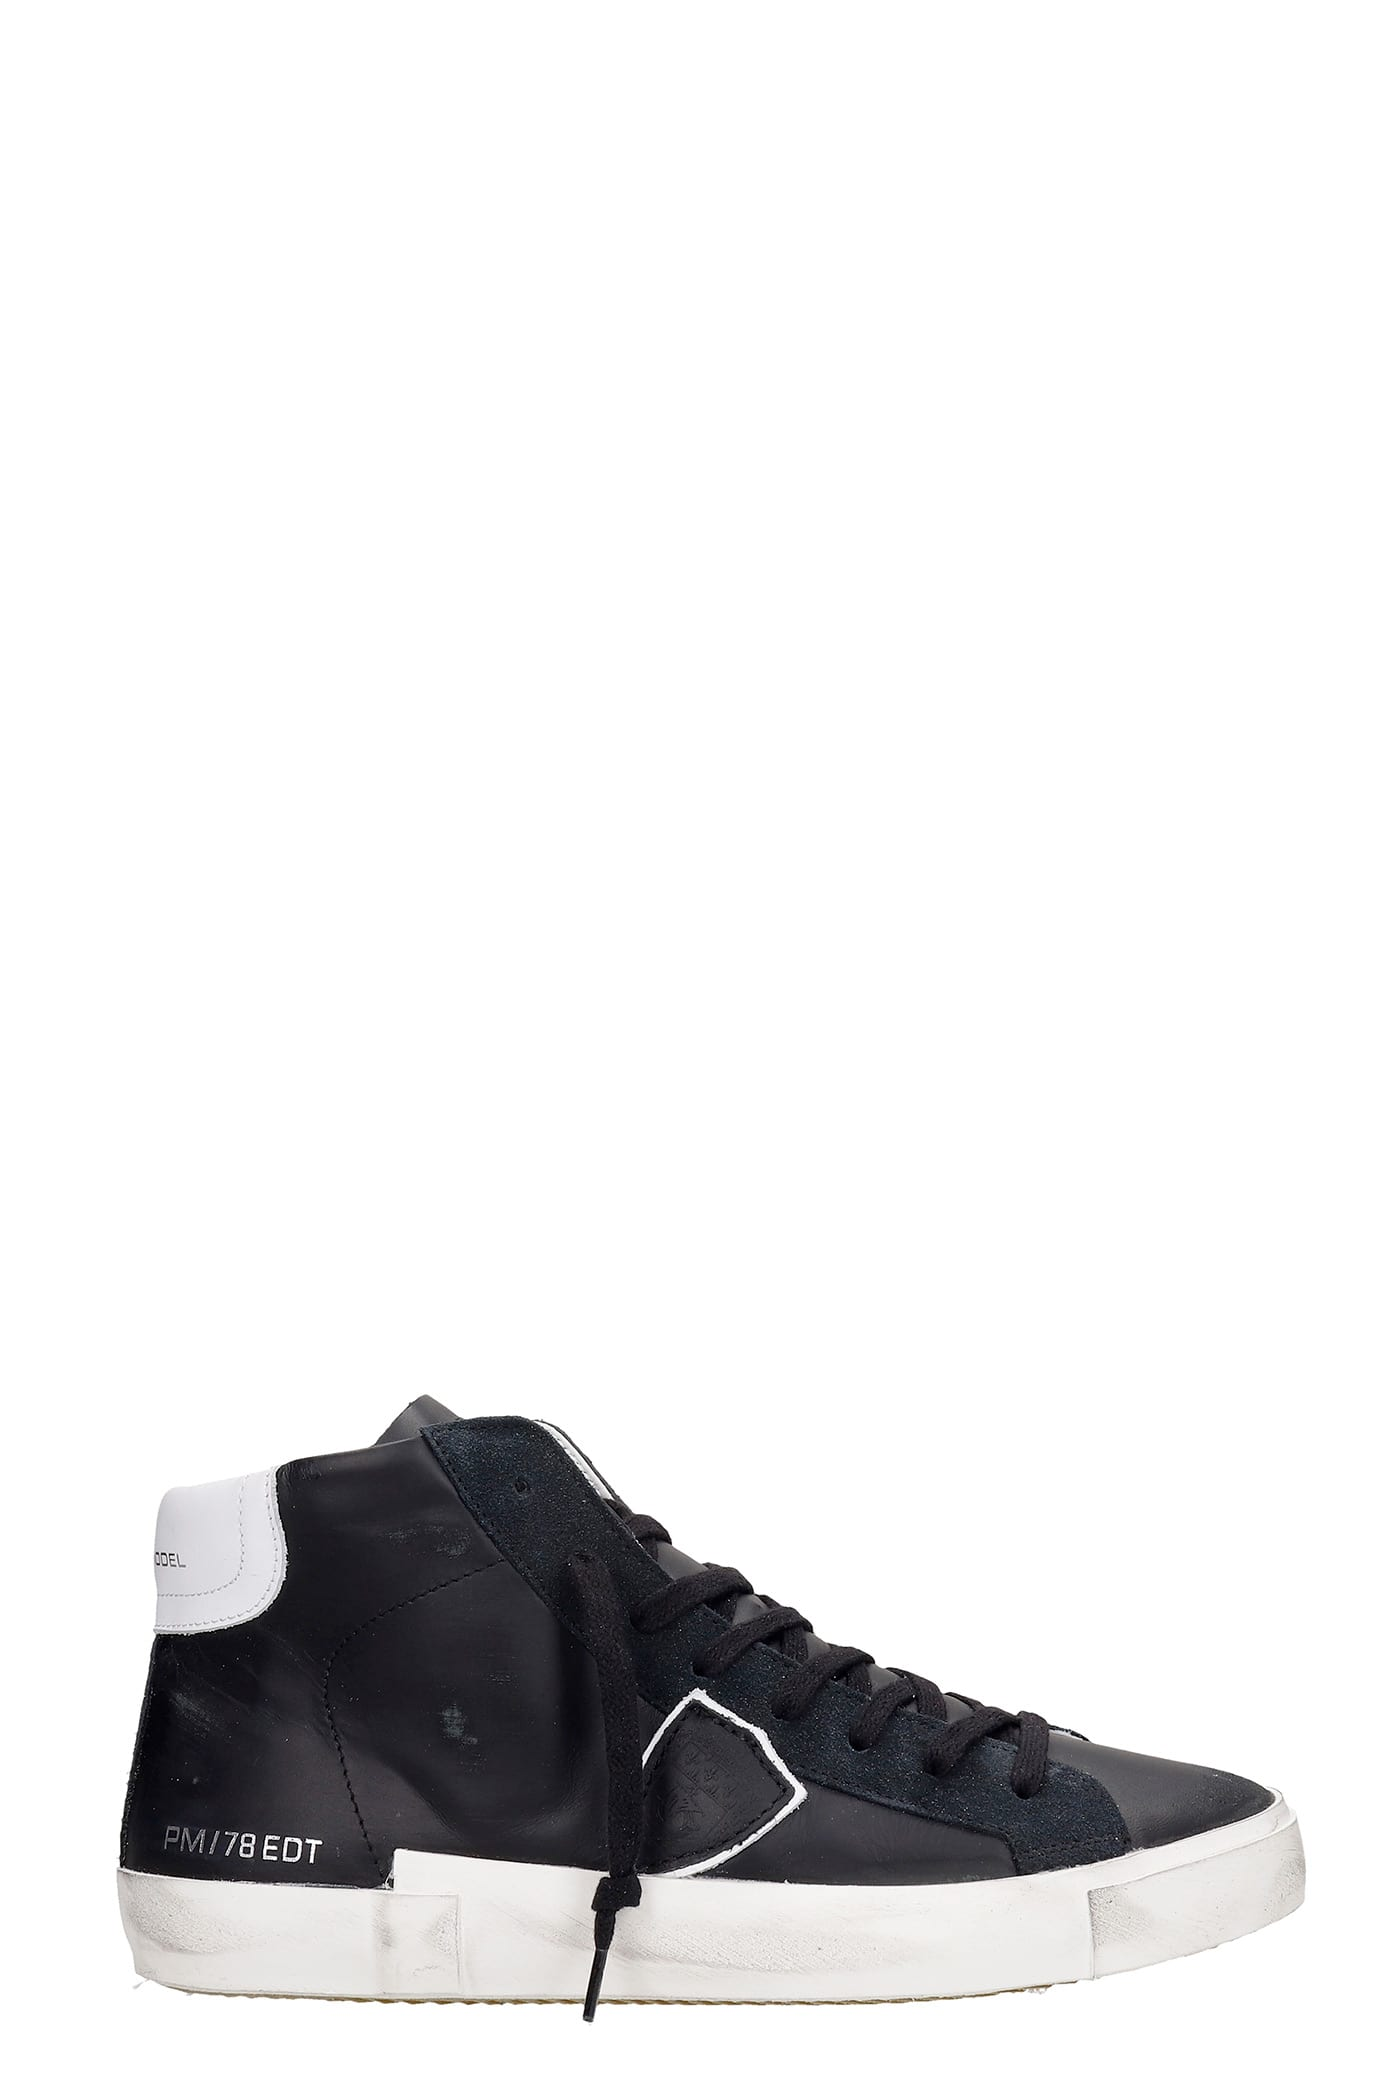 Philippe Model Sneakers PRSX SNEAKERS IN BLACK LEATHER